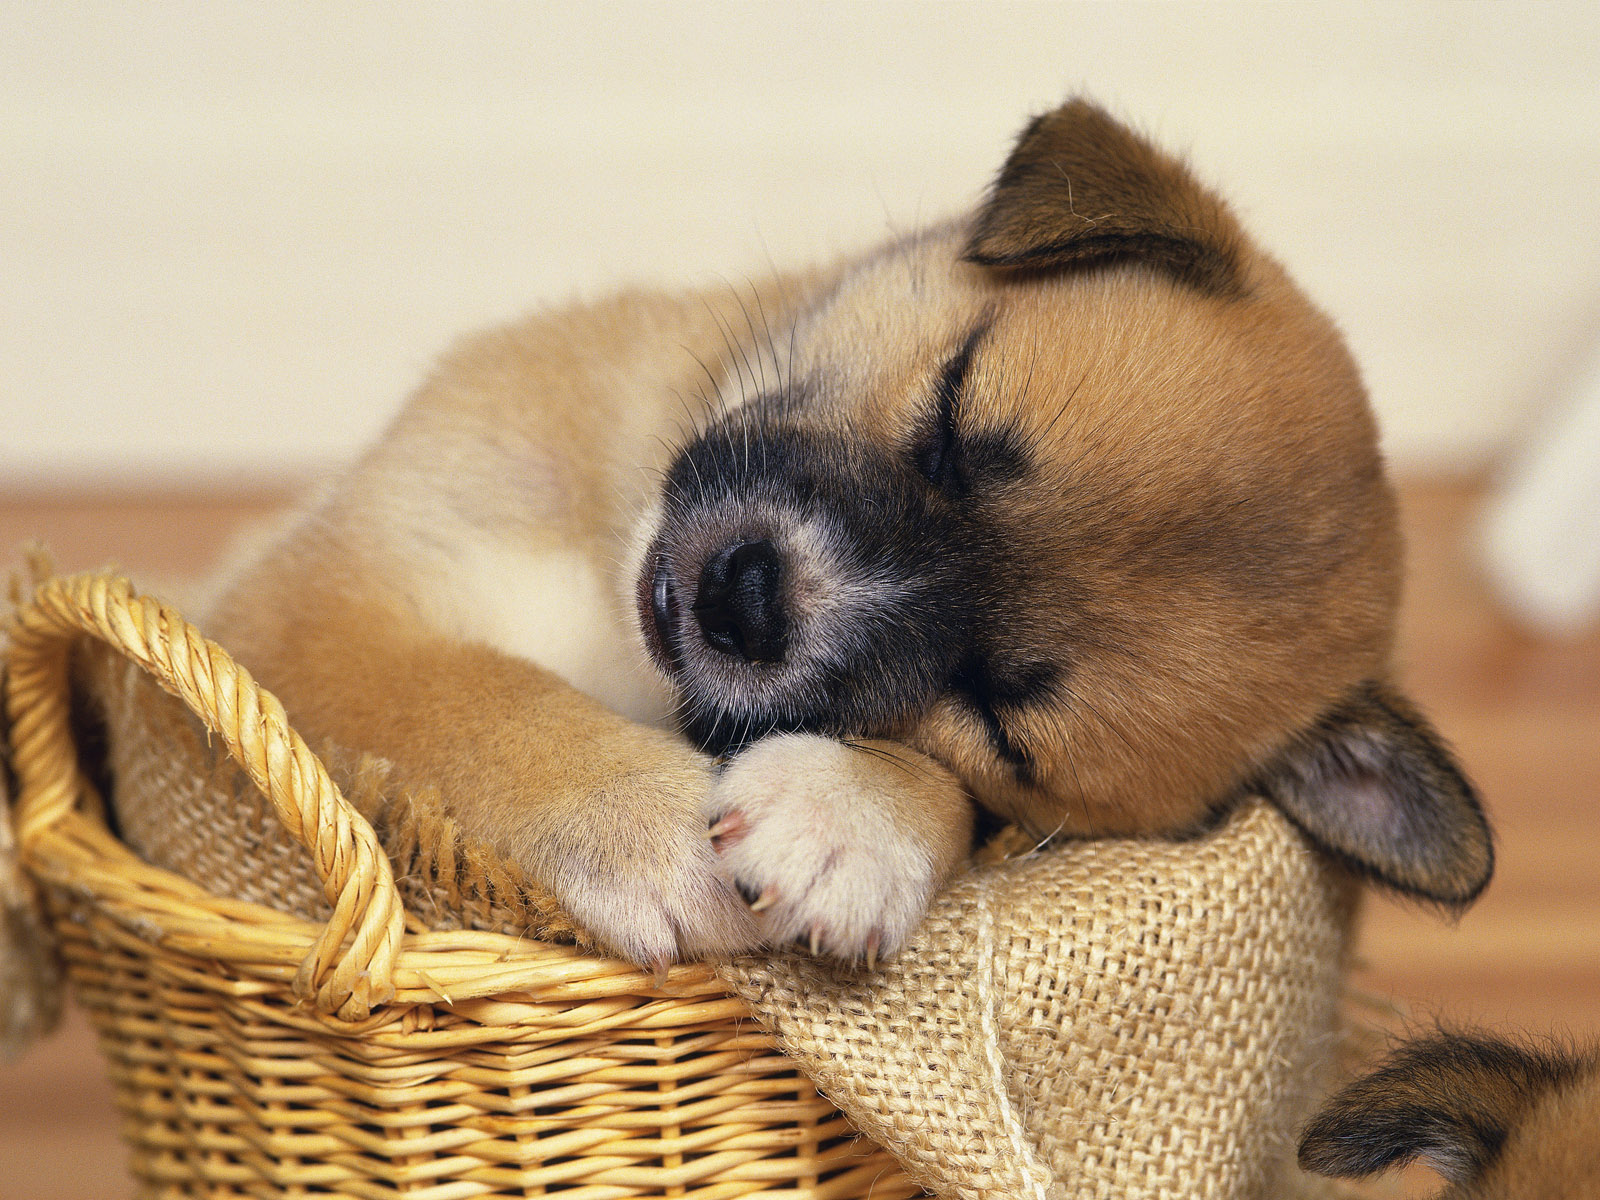 http://2.bp.blogspot.com/_N_mOB63qPaE/TSWZoiq0mFI/AAAAAAAARh4/mDi5nxEydIQ/s1600/Cute-Dog-Wallpaper-Free-Download.jpg